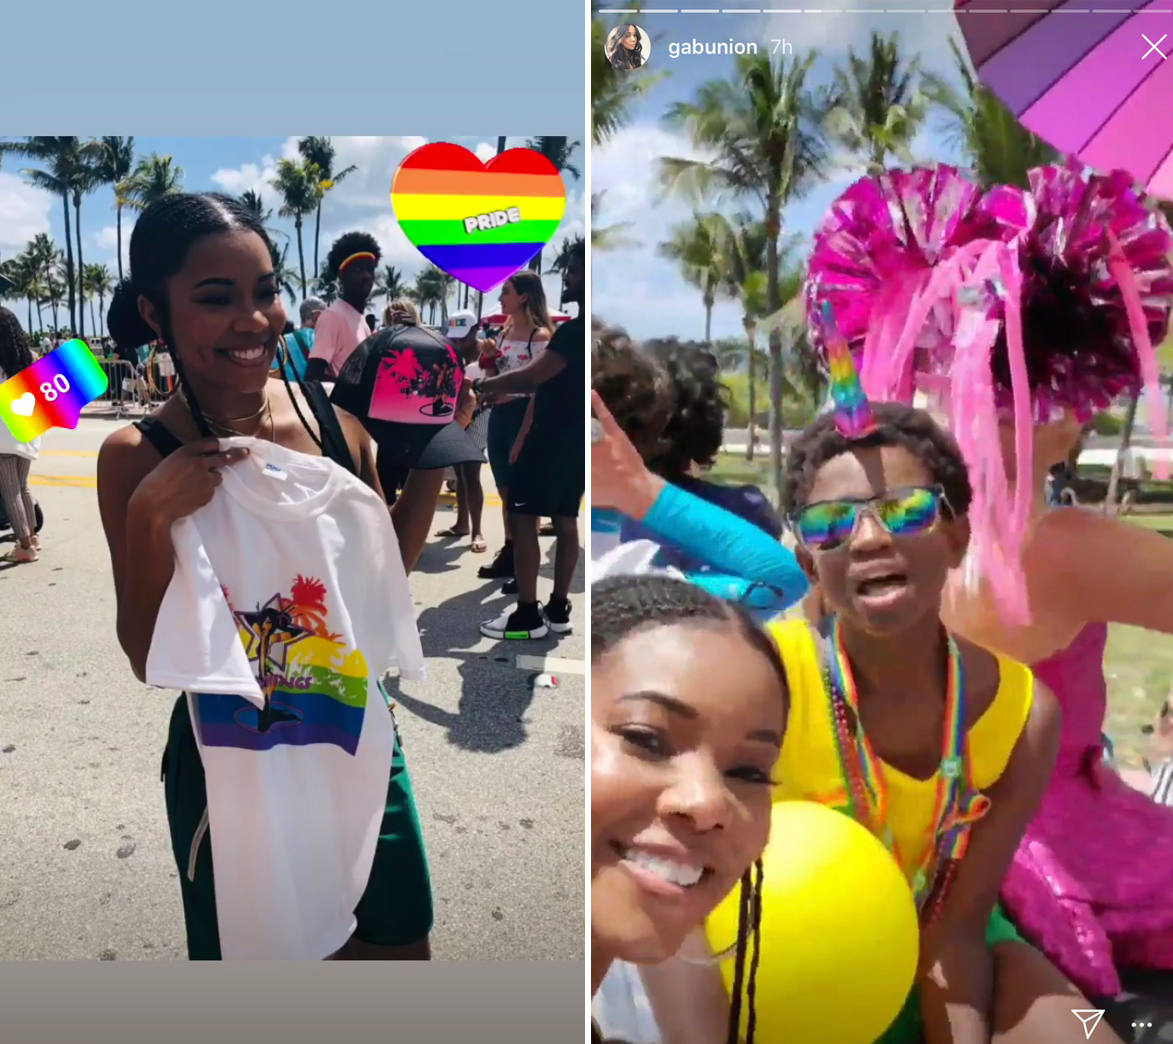 Gabrielle Union Supports Dwyane Wade's 11-Year-Old Son at Gay Pride